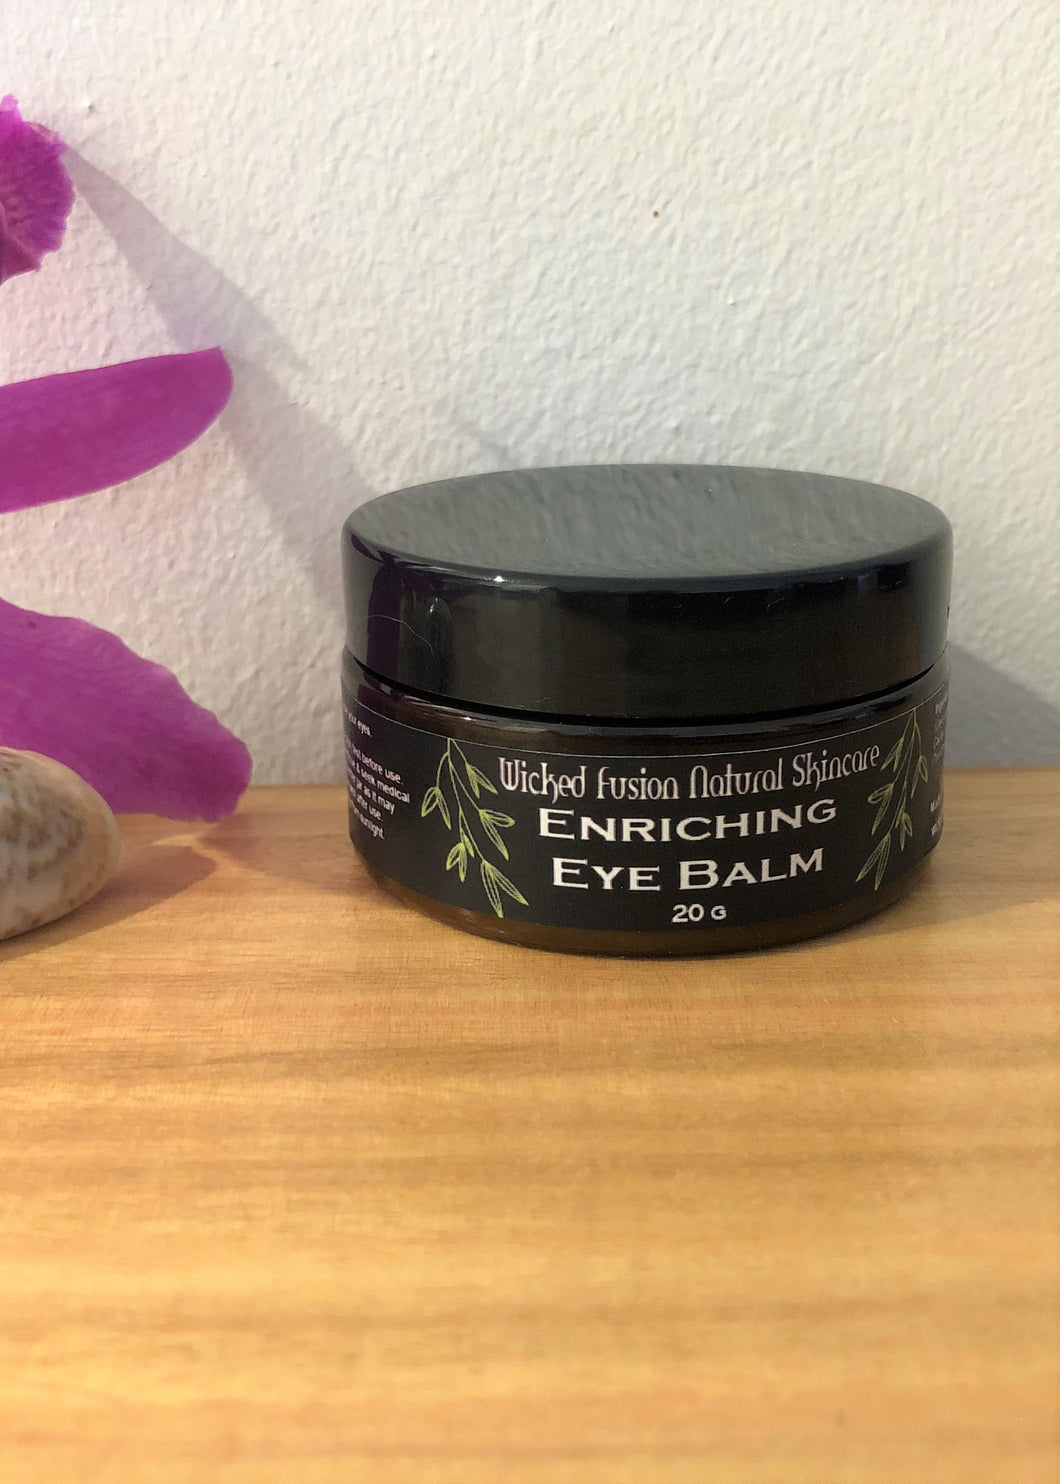 Enriching Eye Balm